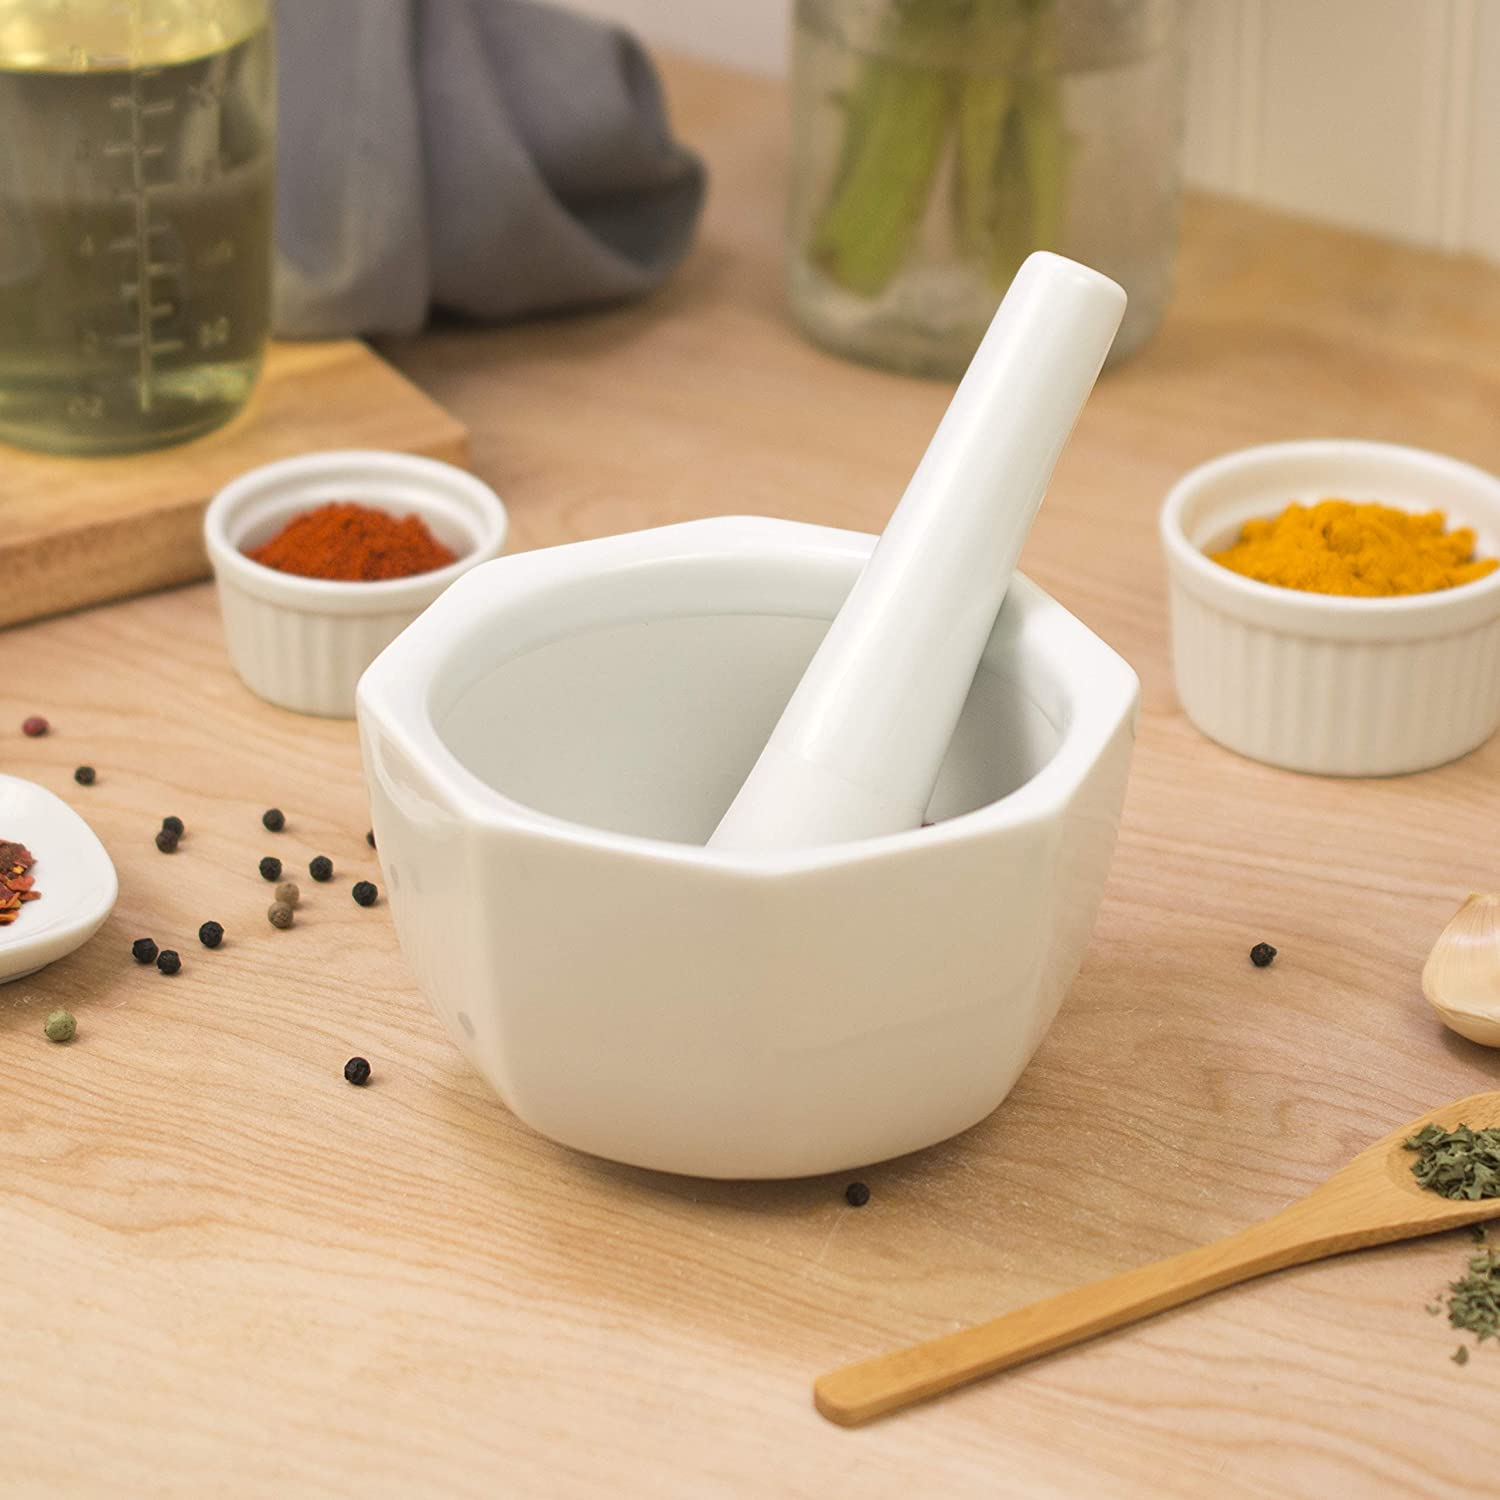 HIC Harold Import Co 79 HIC Porcelain Octaganol Mortar and Pestle 3.5-Inch White 3.5 Inch